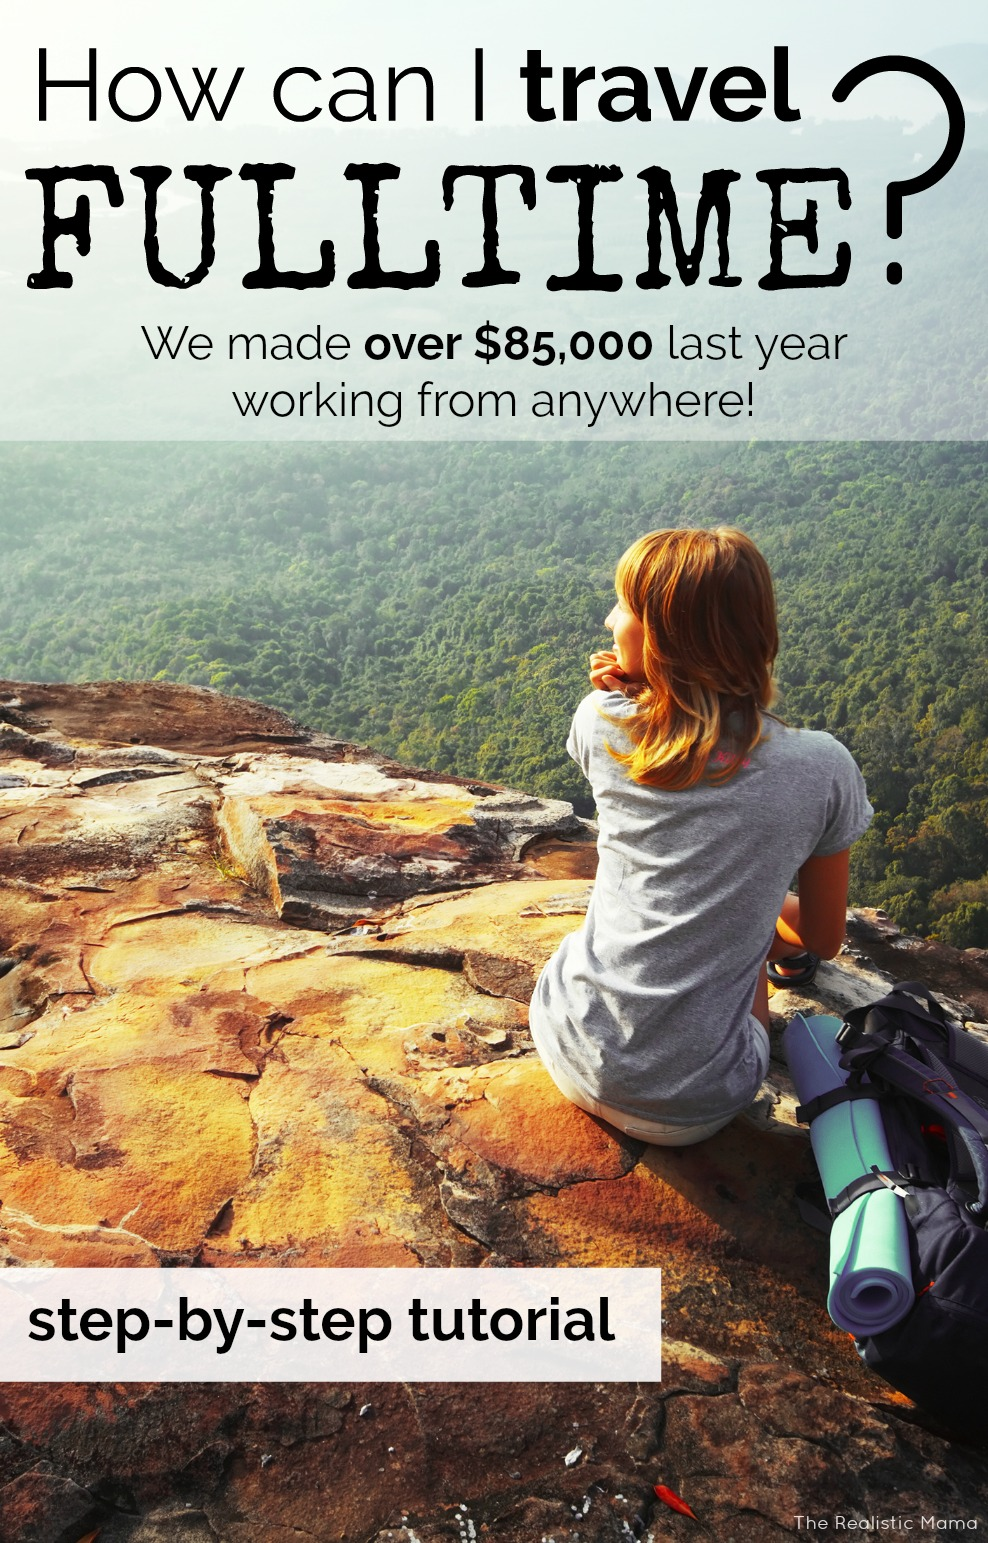 OMG! How to travel full time! And step-by-step tutorial to fund my travel!